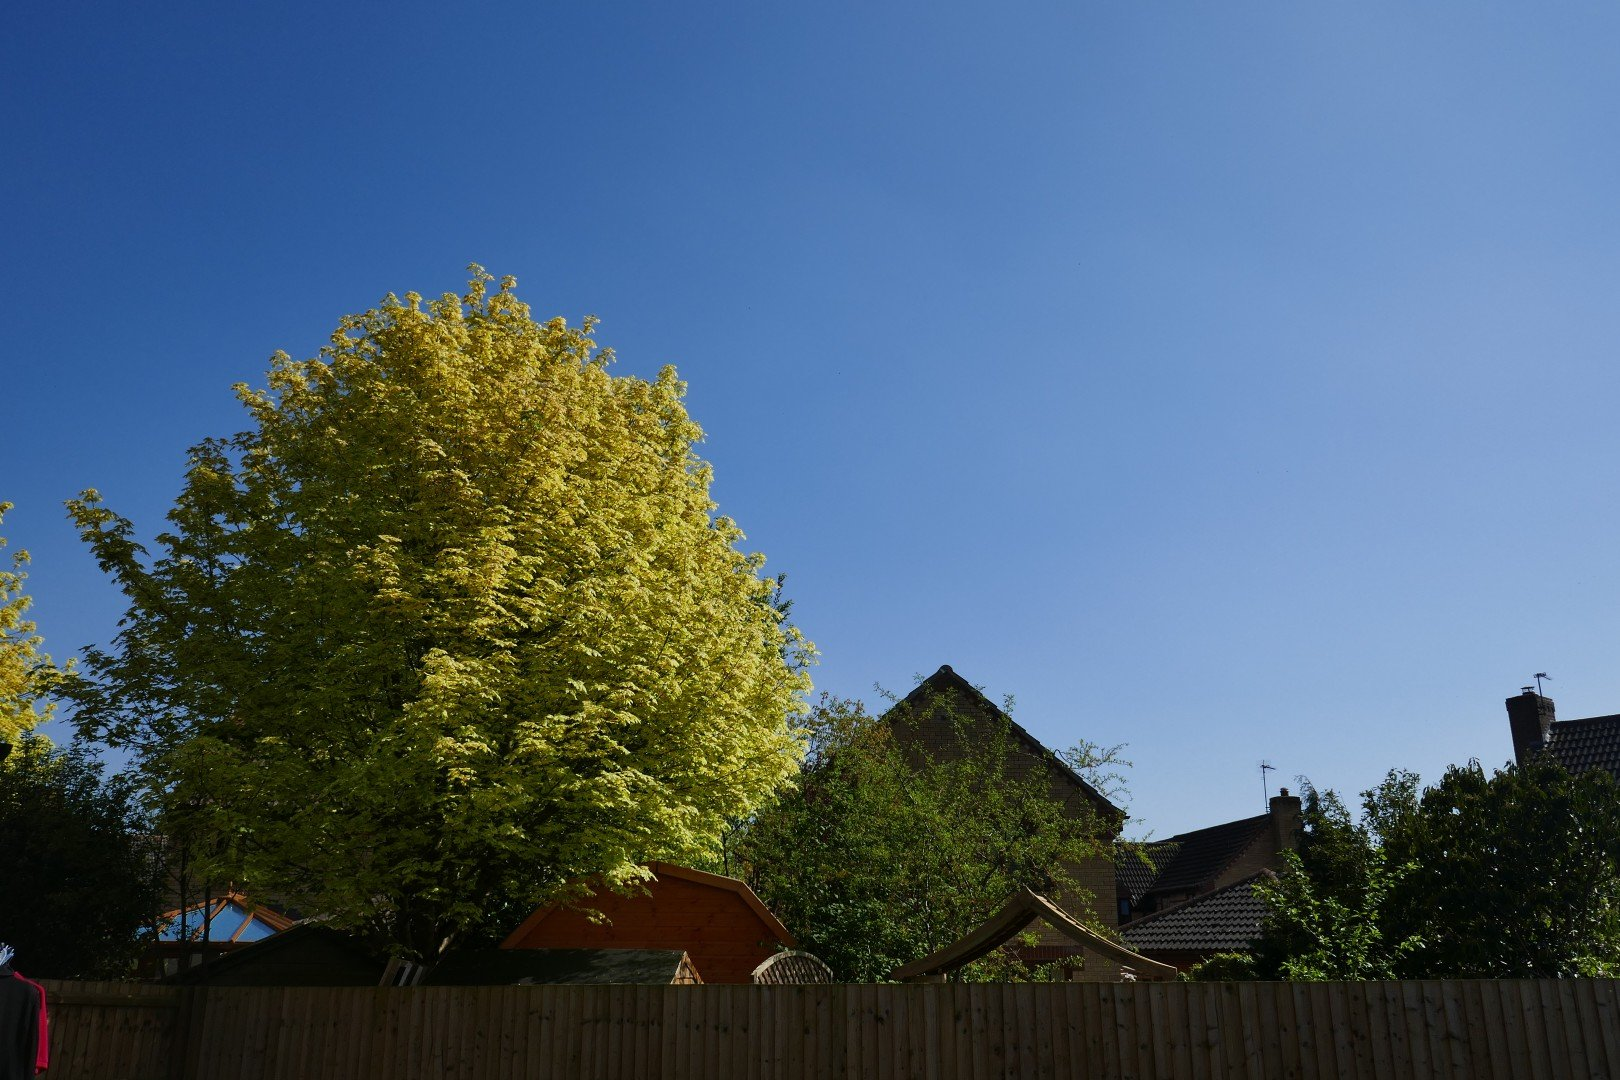 A beautiful blue sky on a spring day above a tree newly clothed with leaves